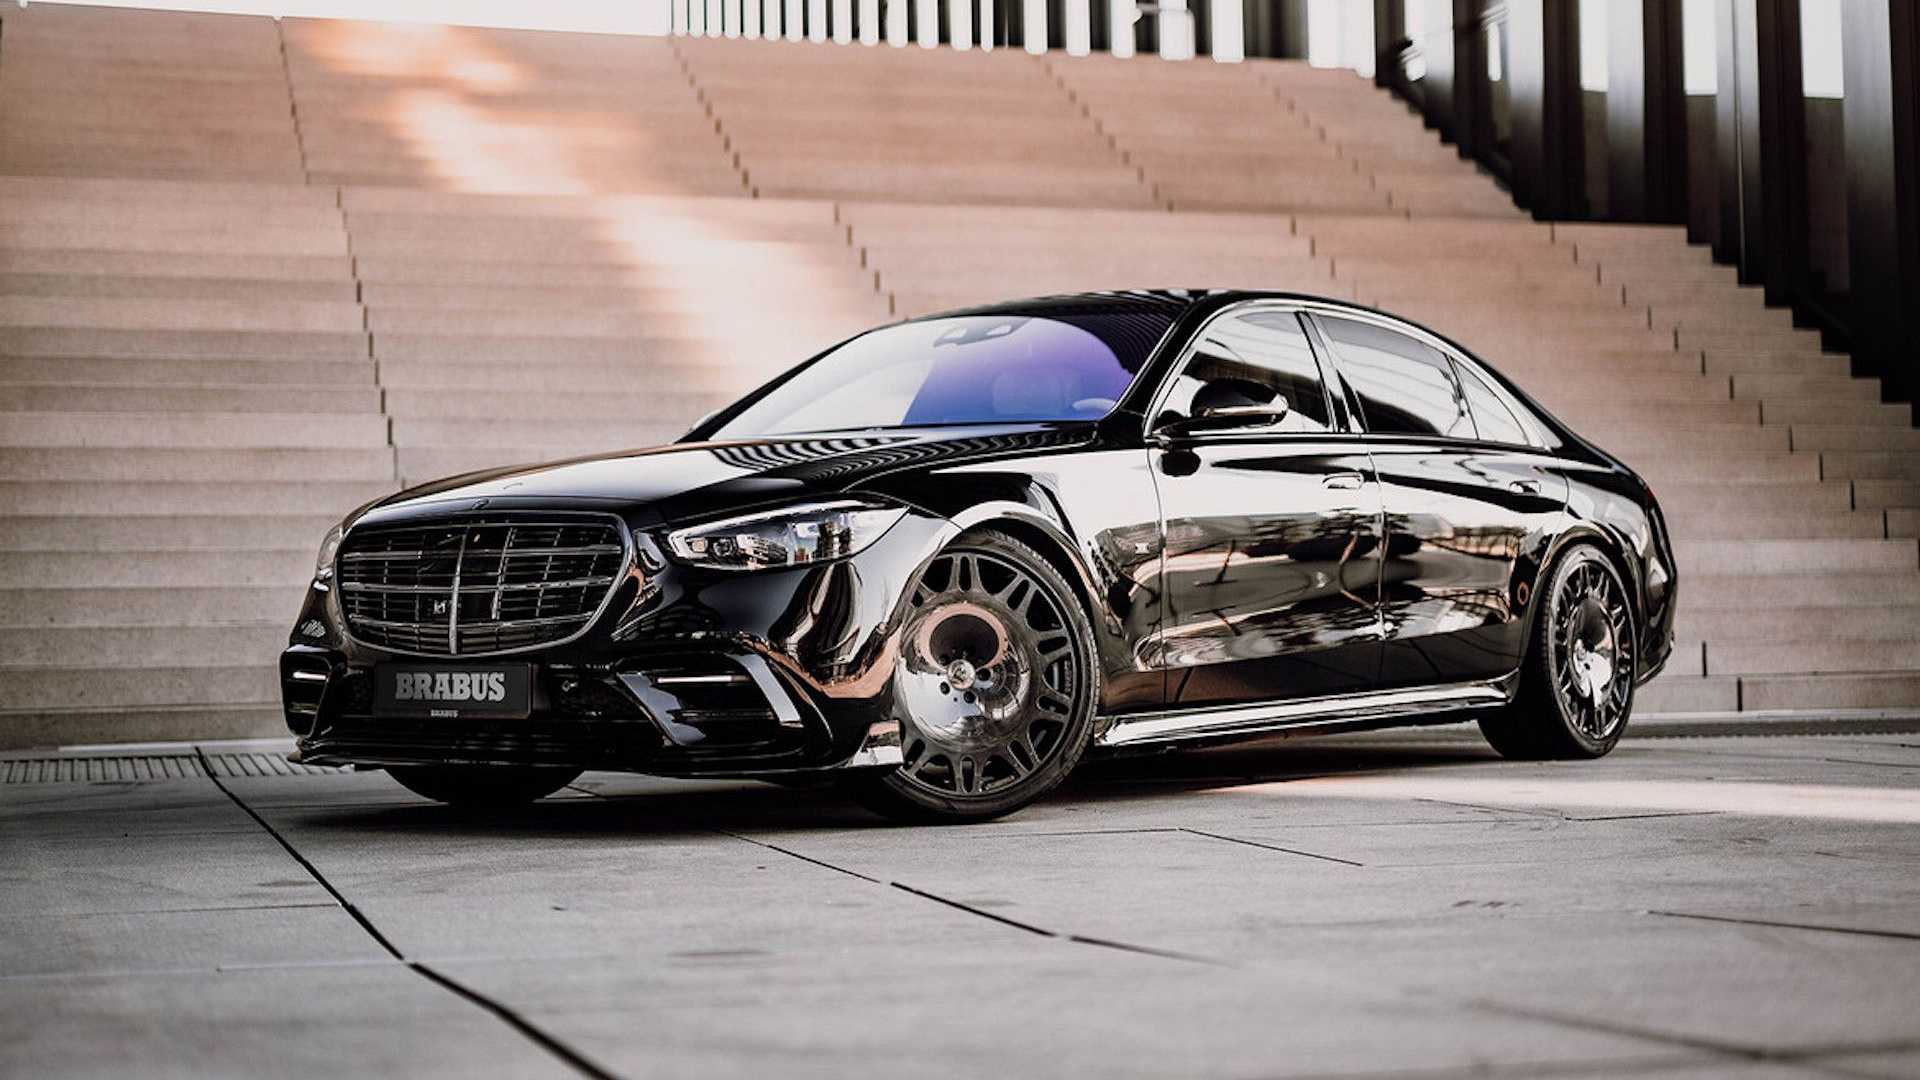 The Mercedes S-Class is the go-to flagship with a tri-pointed star badge, but those who desire still more individuality may turn themselves to Brabus for a round of tuning.